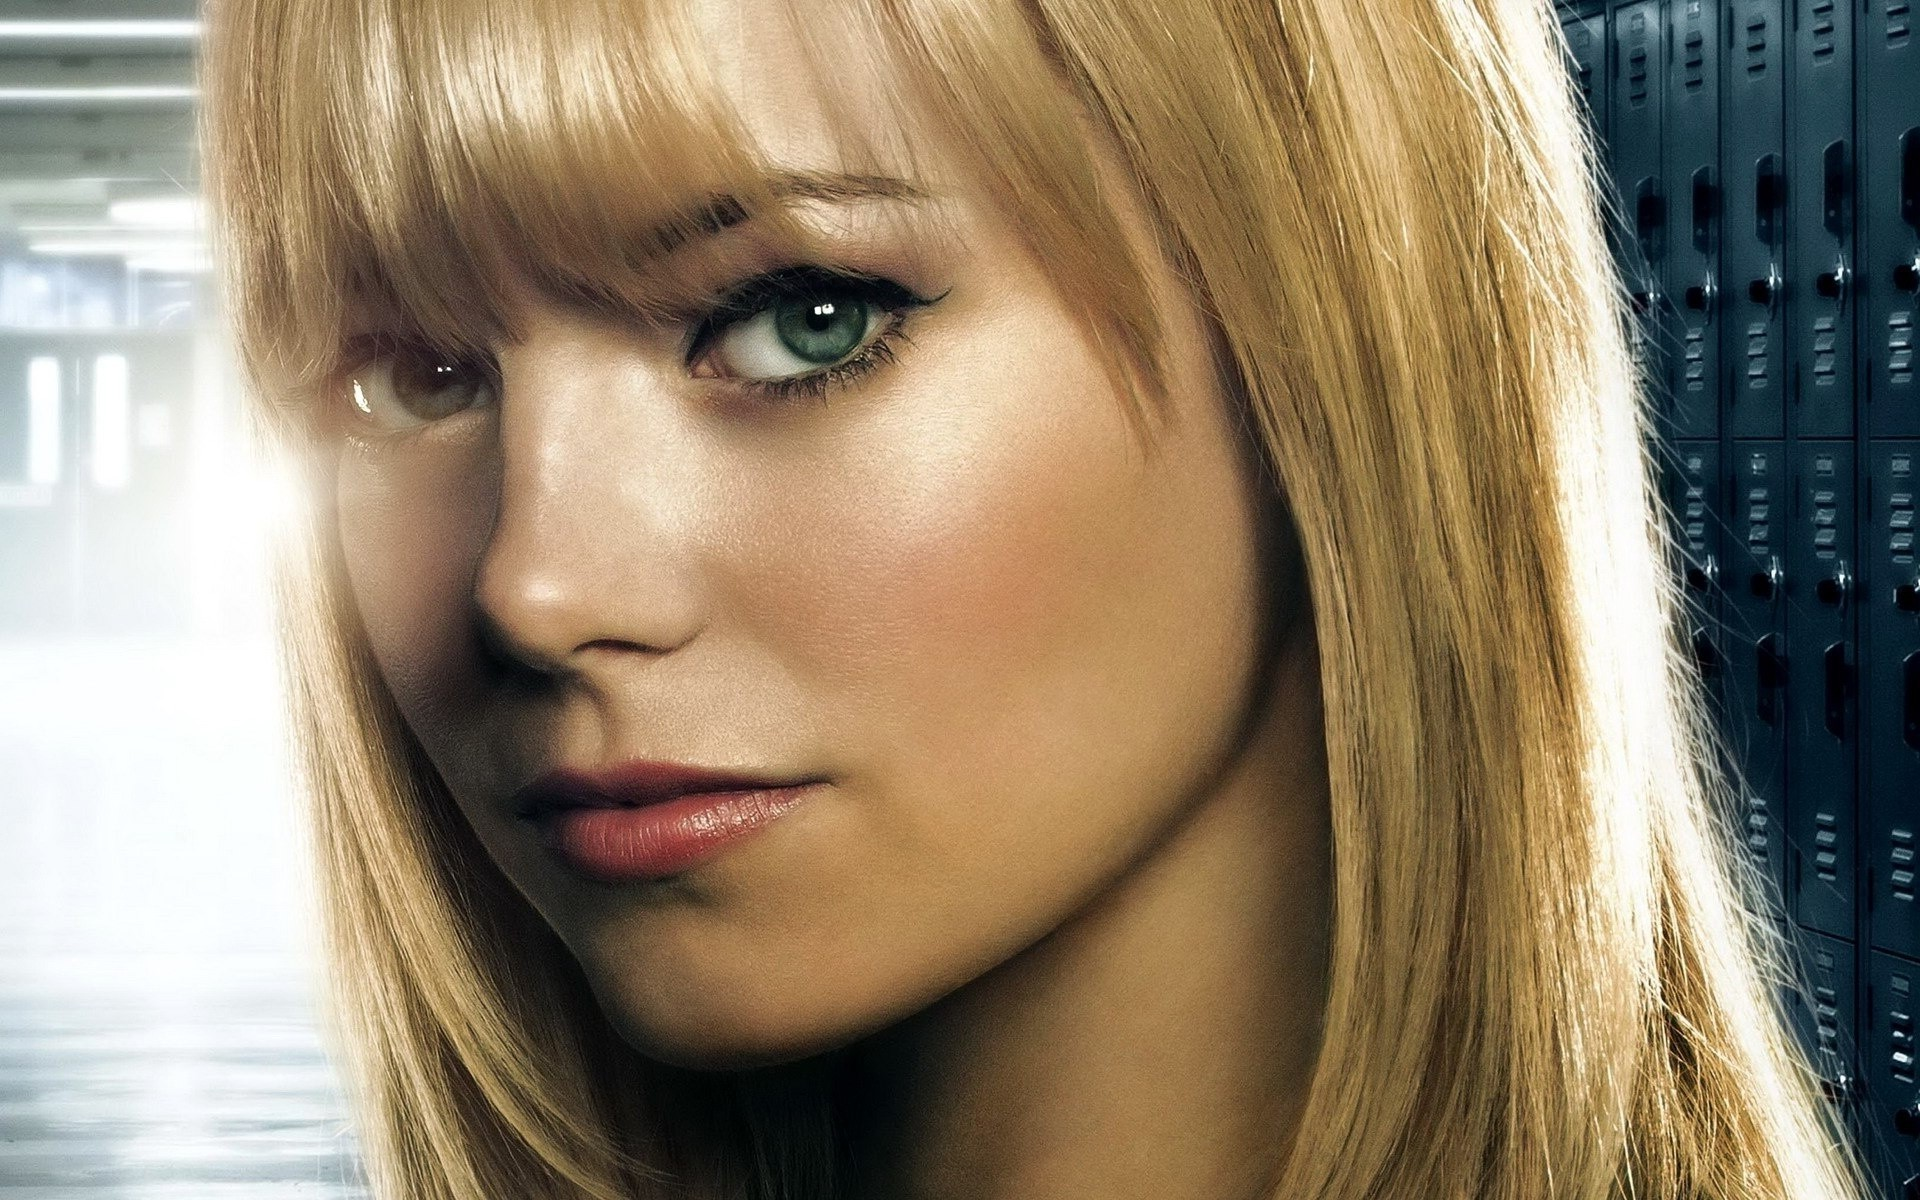 Gwen stacy wallpapers 66 images - Emma stone wallpaper ...